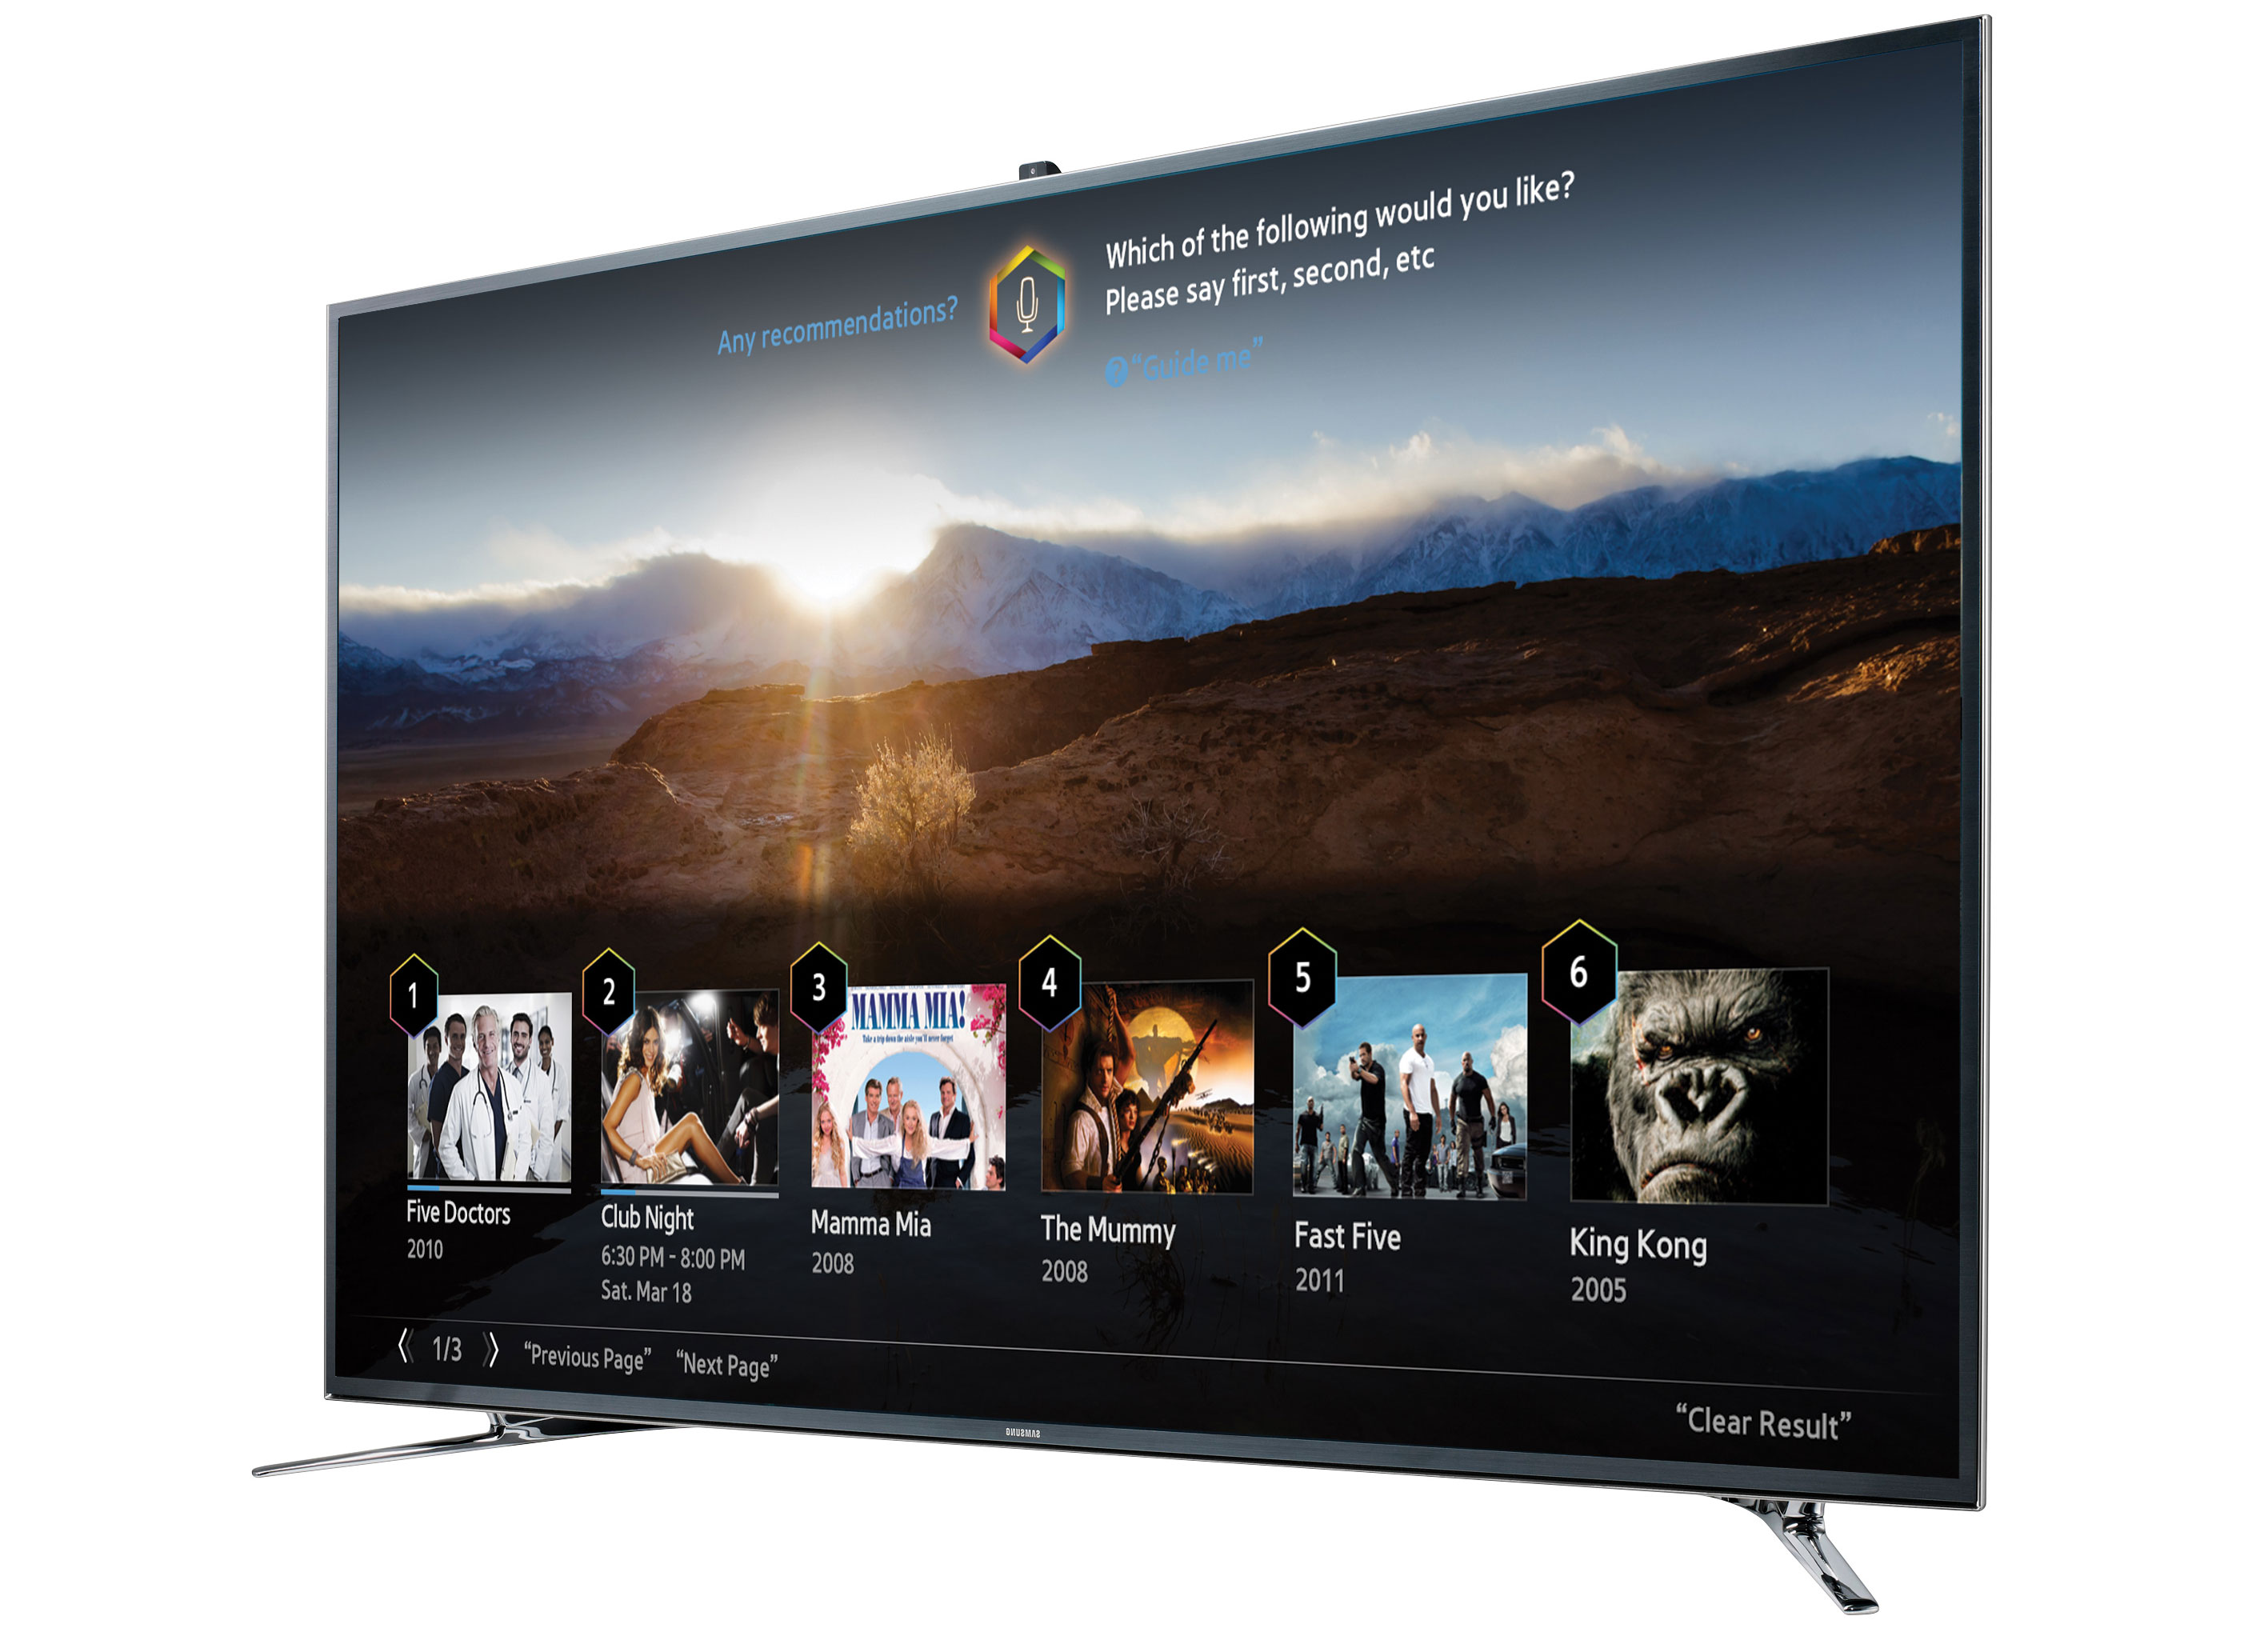 Samsung S F9000 4k Tvs Will Launch In August Flatpanelshd